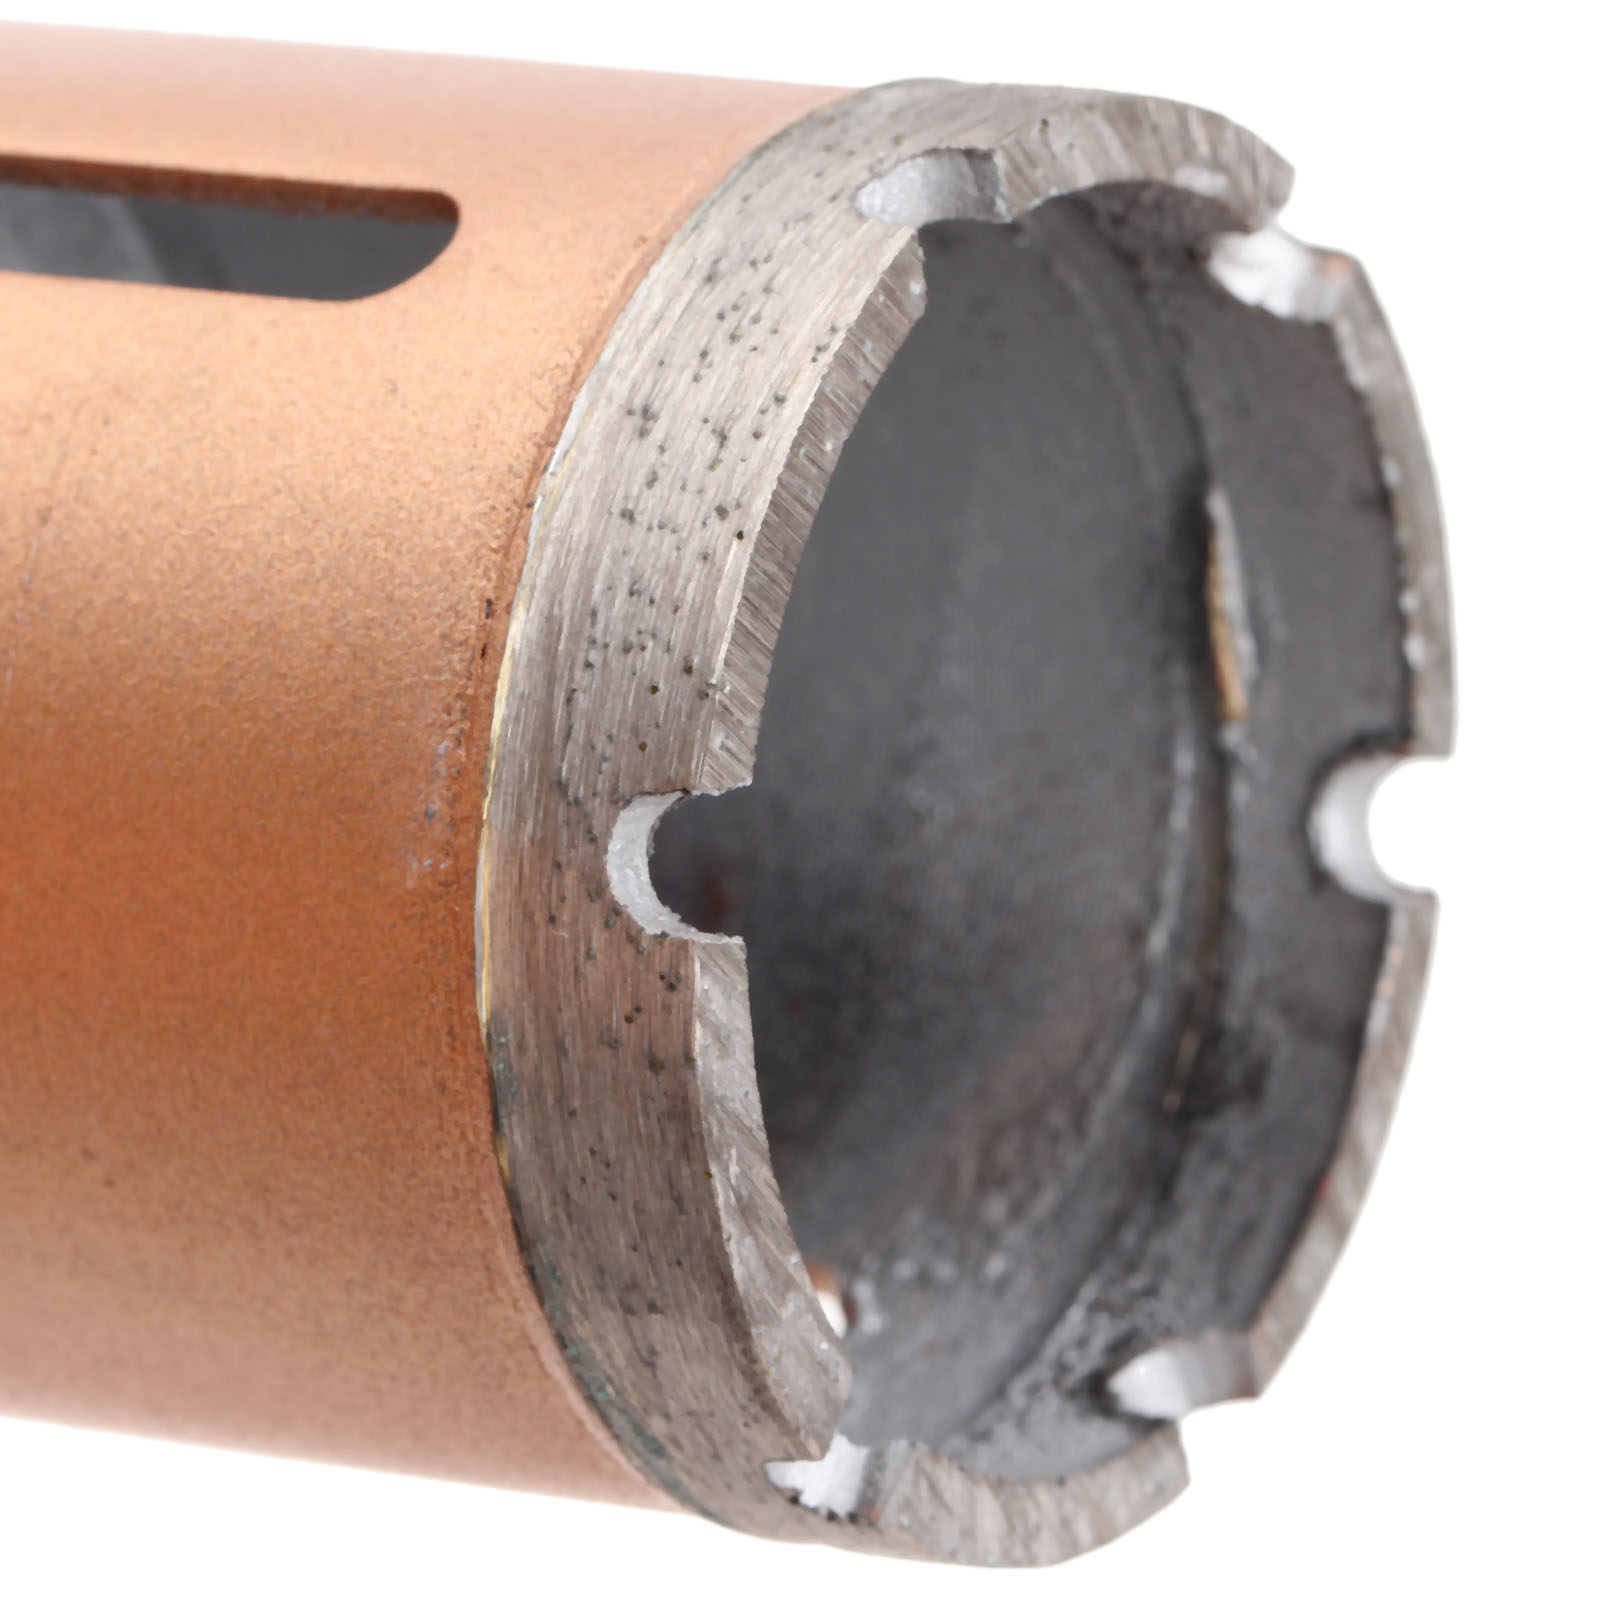 Diamond Core Drill Bit Metal Hole Saw Holes Drilling Carpentry Cutter Tools For Tiles Marble Glass Granite - 1Pc - 6-22mm